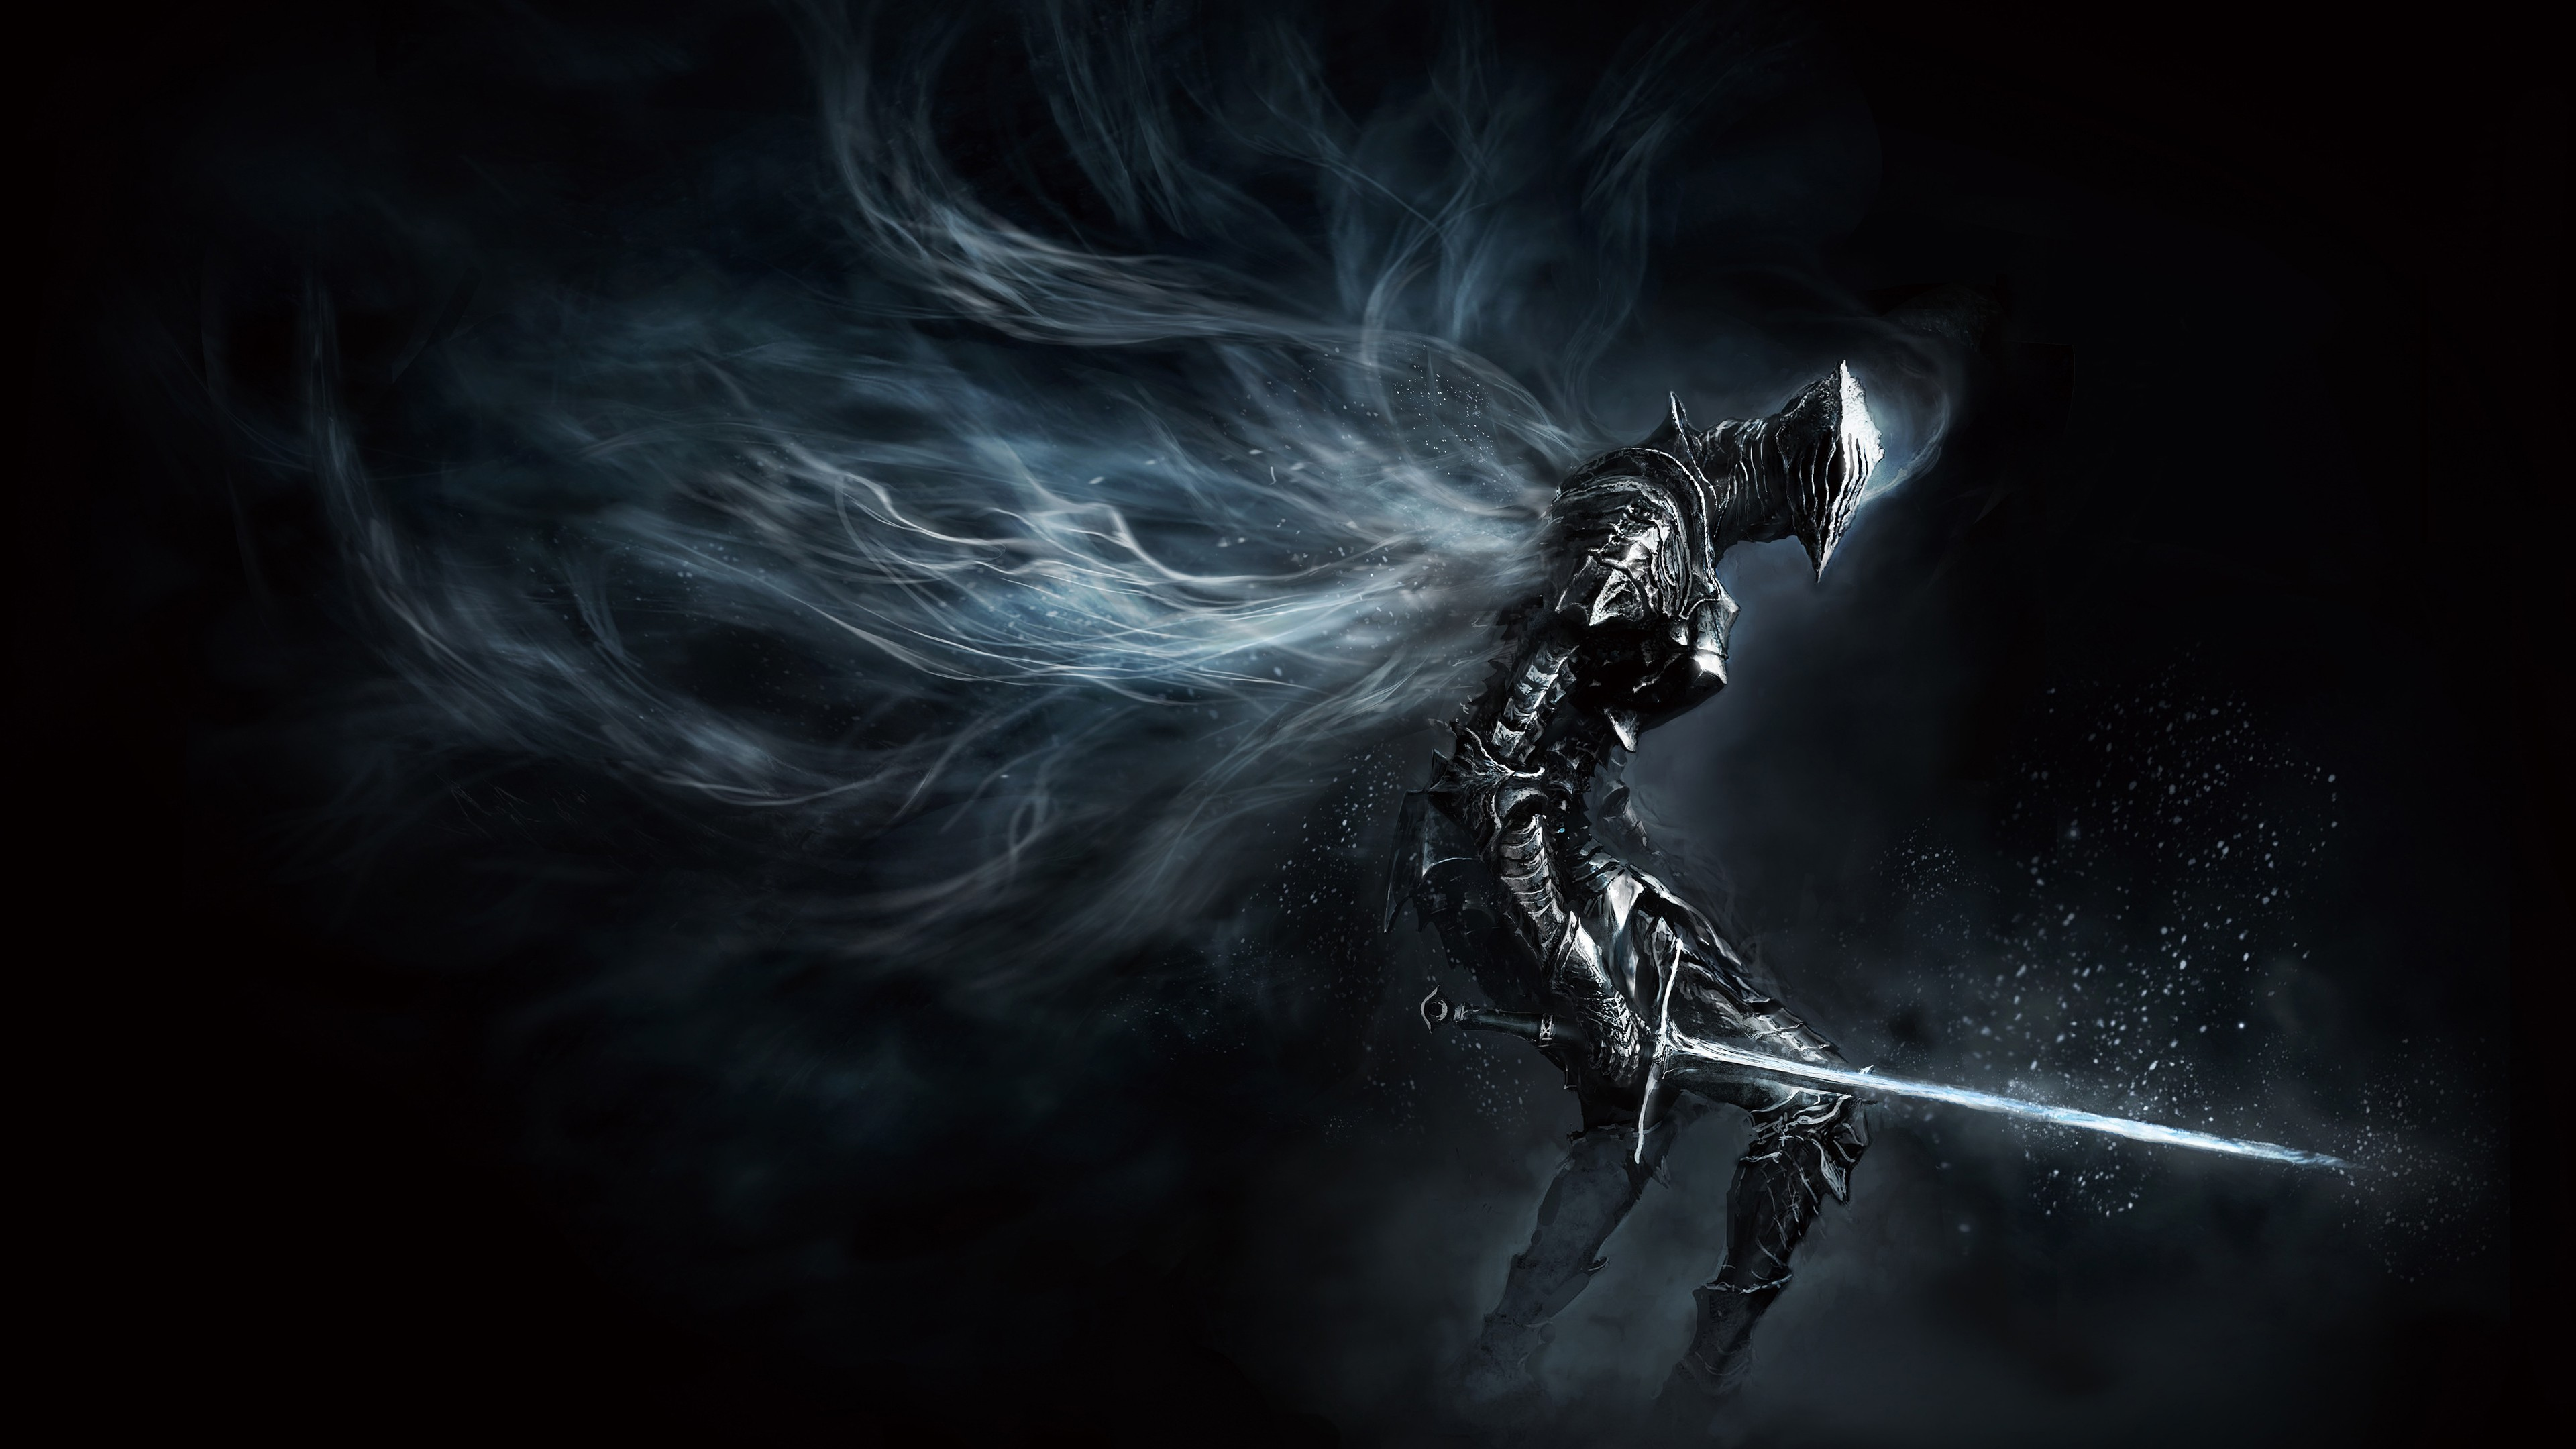 dark souls 3 4k hd wallpaper 3840x2160 3840x2160